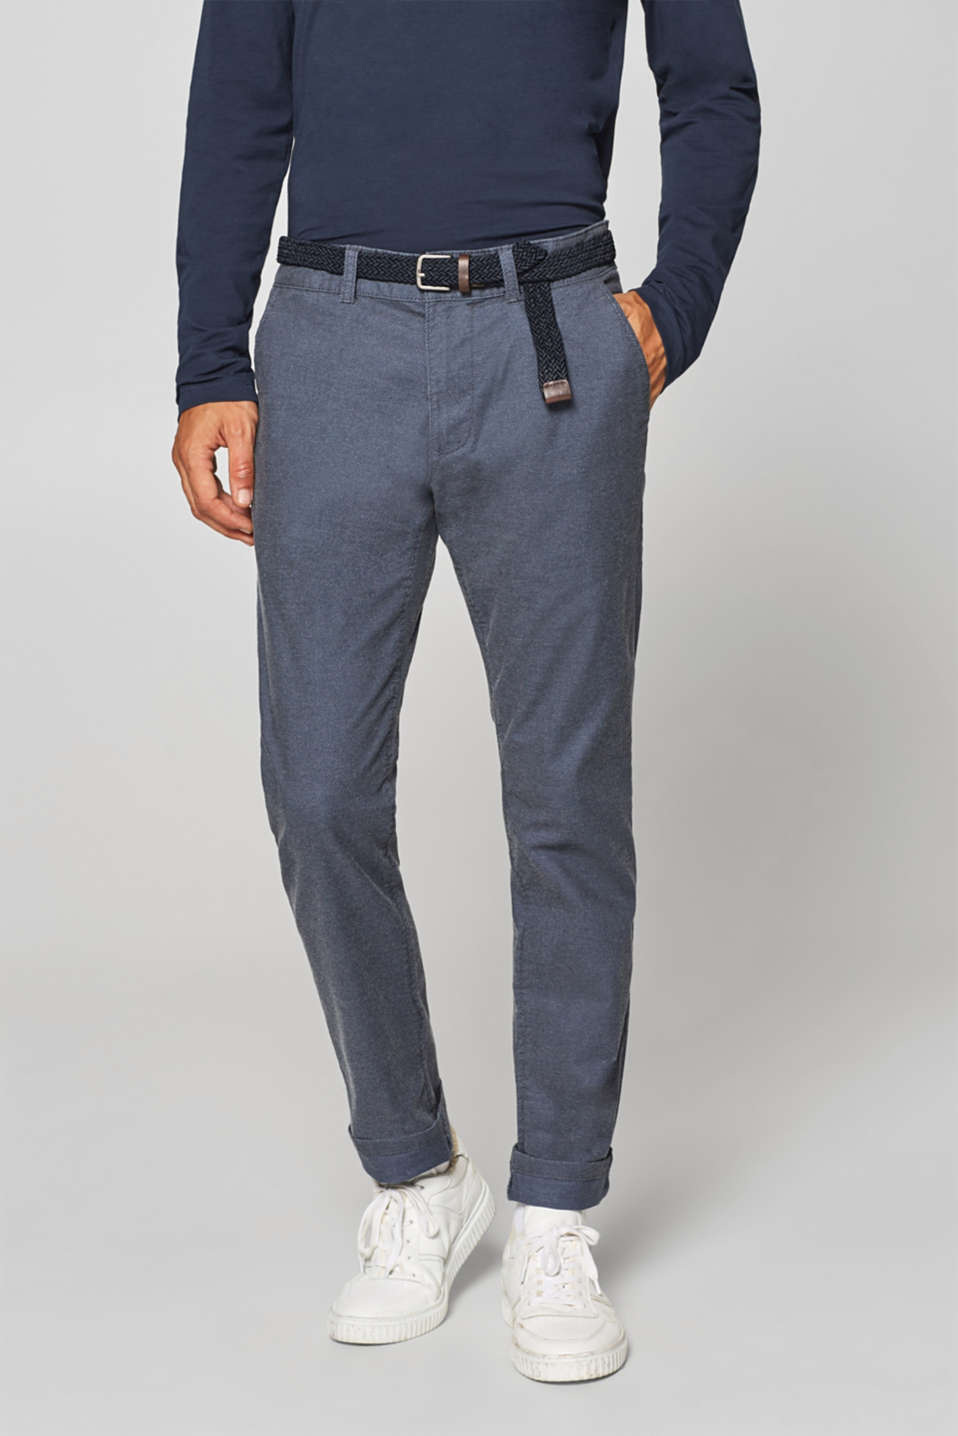 edc - Chinos with belt and super stretch for comfort